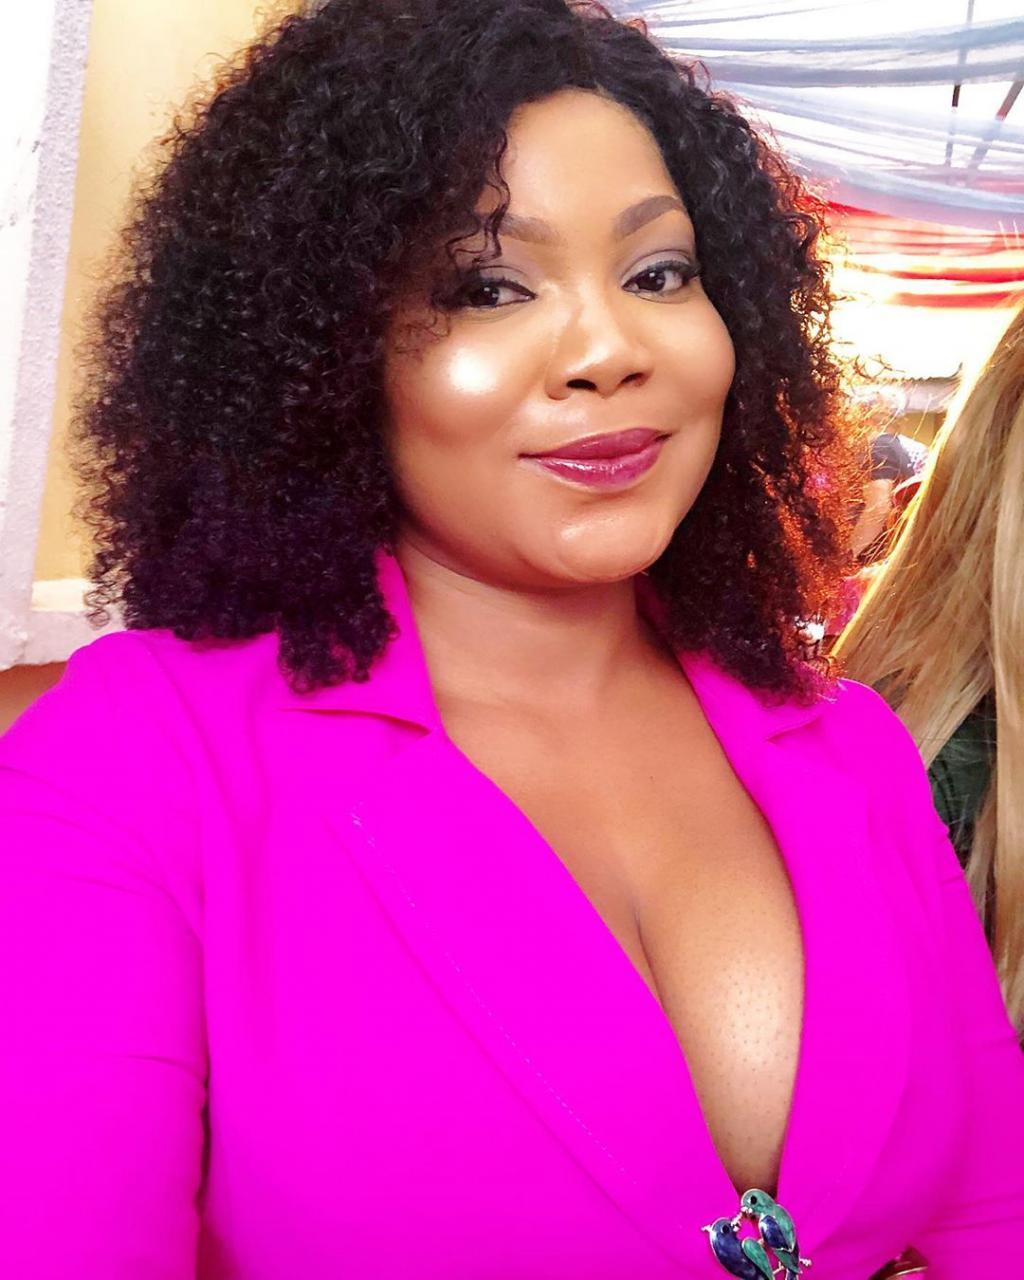 'Why I Date Older Men, my Lover Is 17 Years Older Than Me' – Actress, Cynthia Shalom Speaks 1